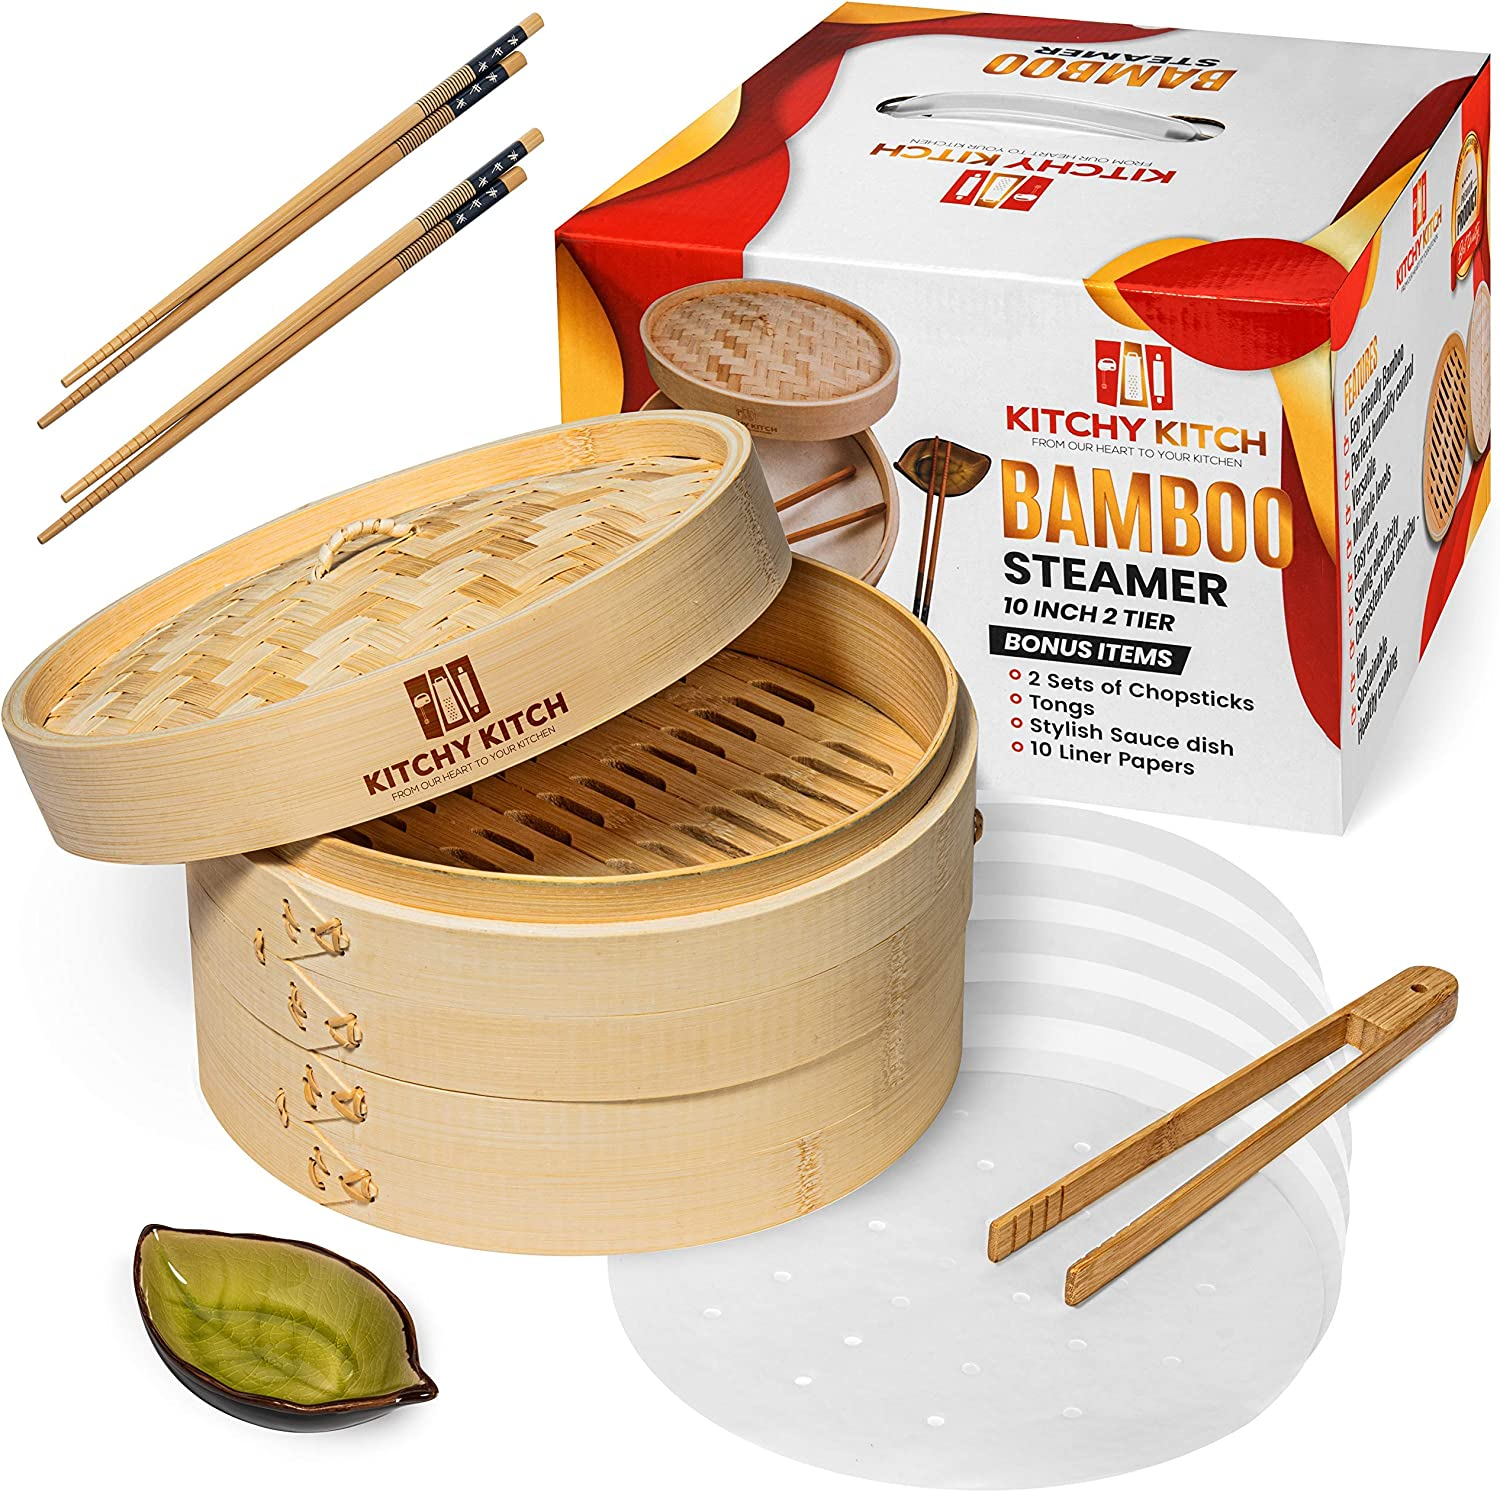 Bamboo Steamer Basket for Cooking, 10 Inch tray x 2, Chopstick Set x 2, Tongs, 10 Liner Paper & Sauce Pot - Steam Cook Healthy Food Every Day. Perfect for Asian Food, Dim sum, Dumpling, Fish